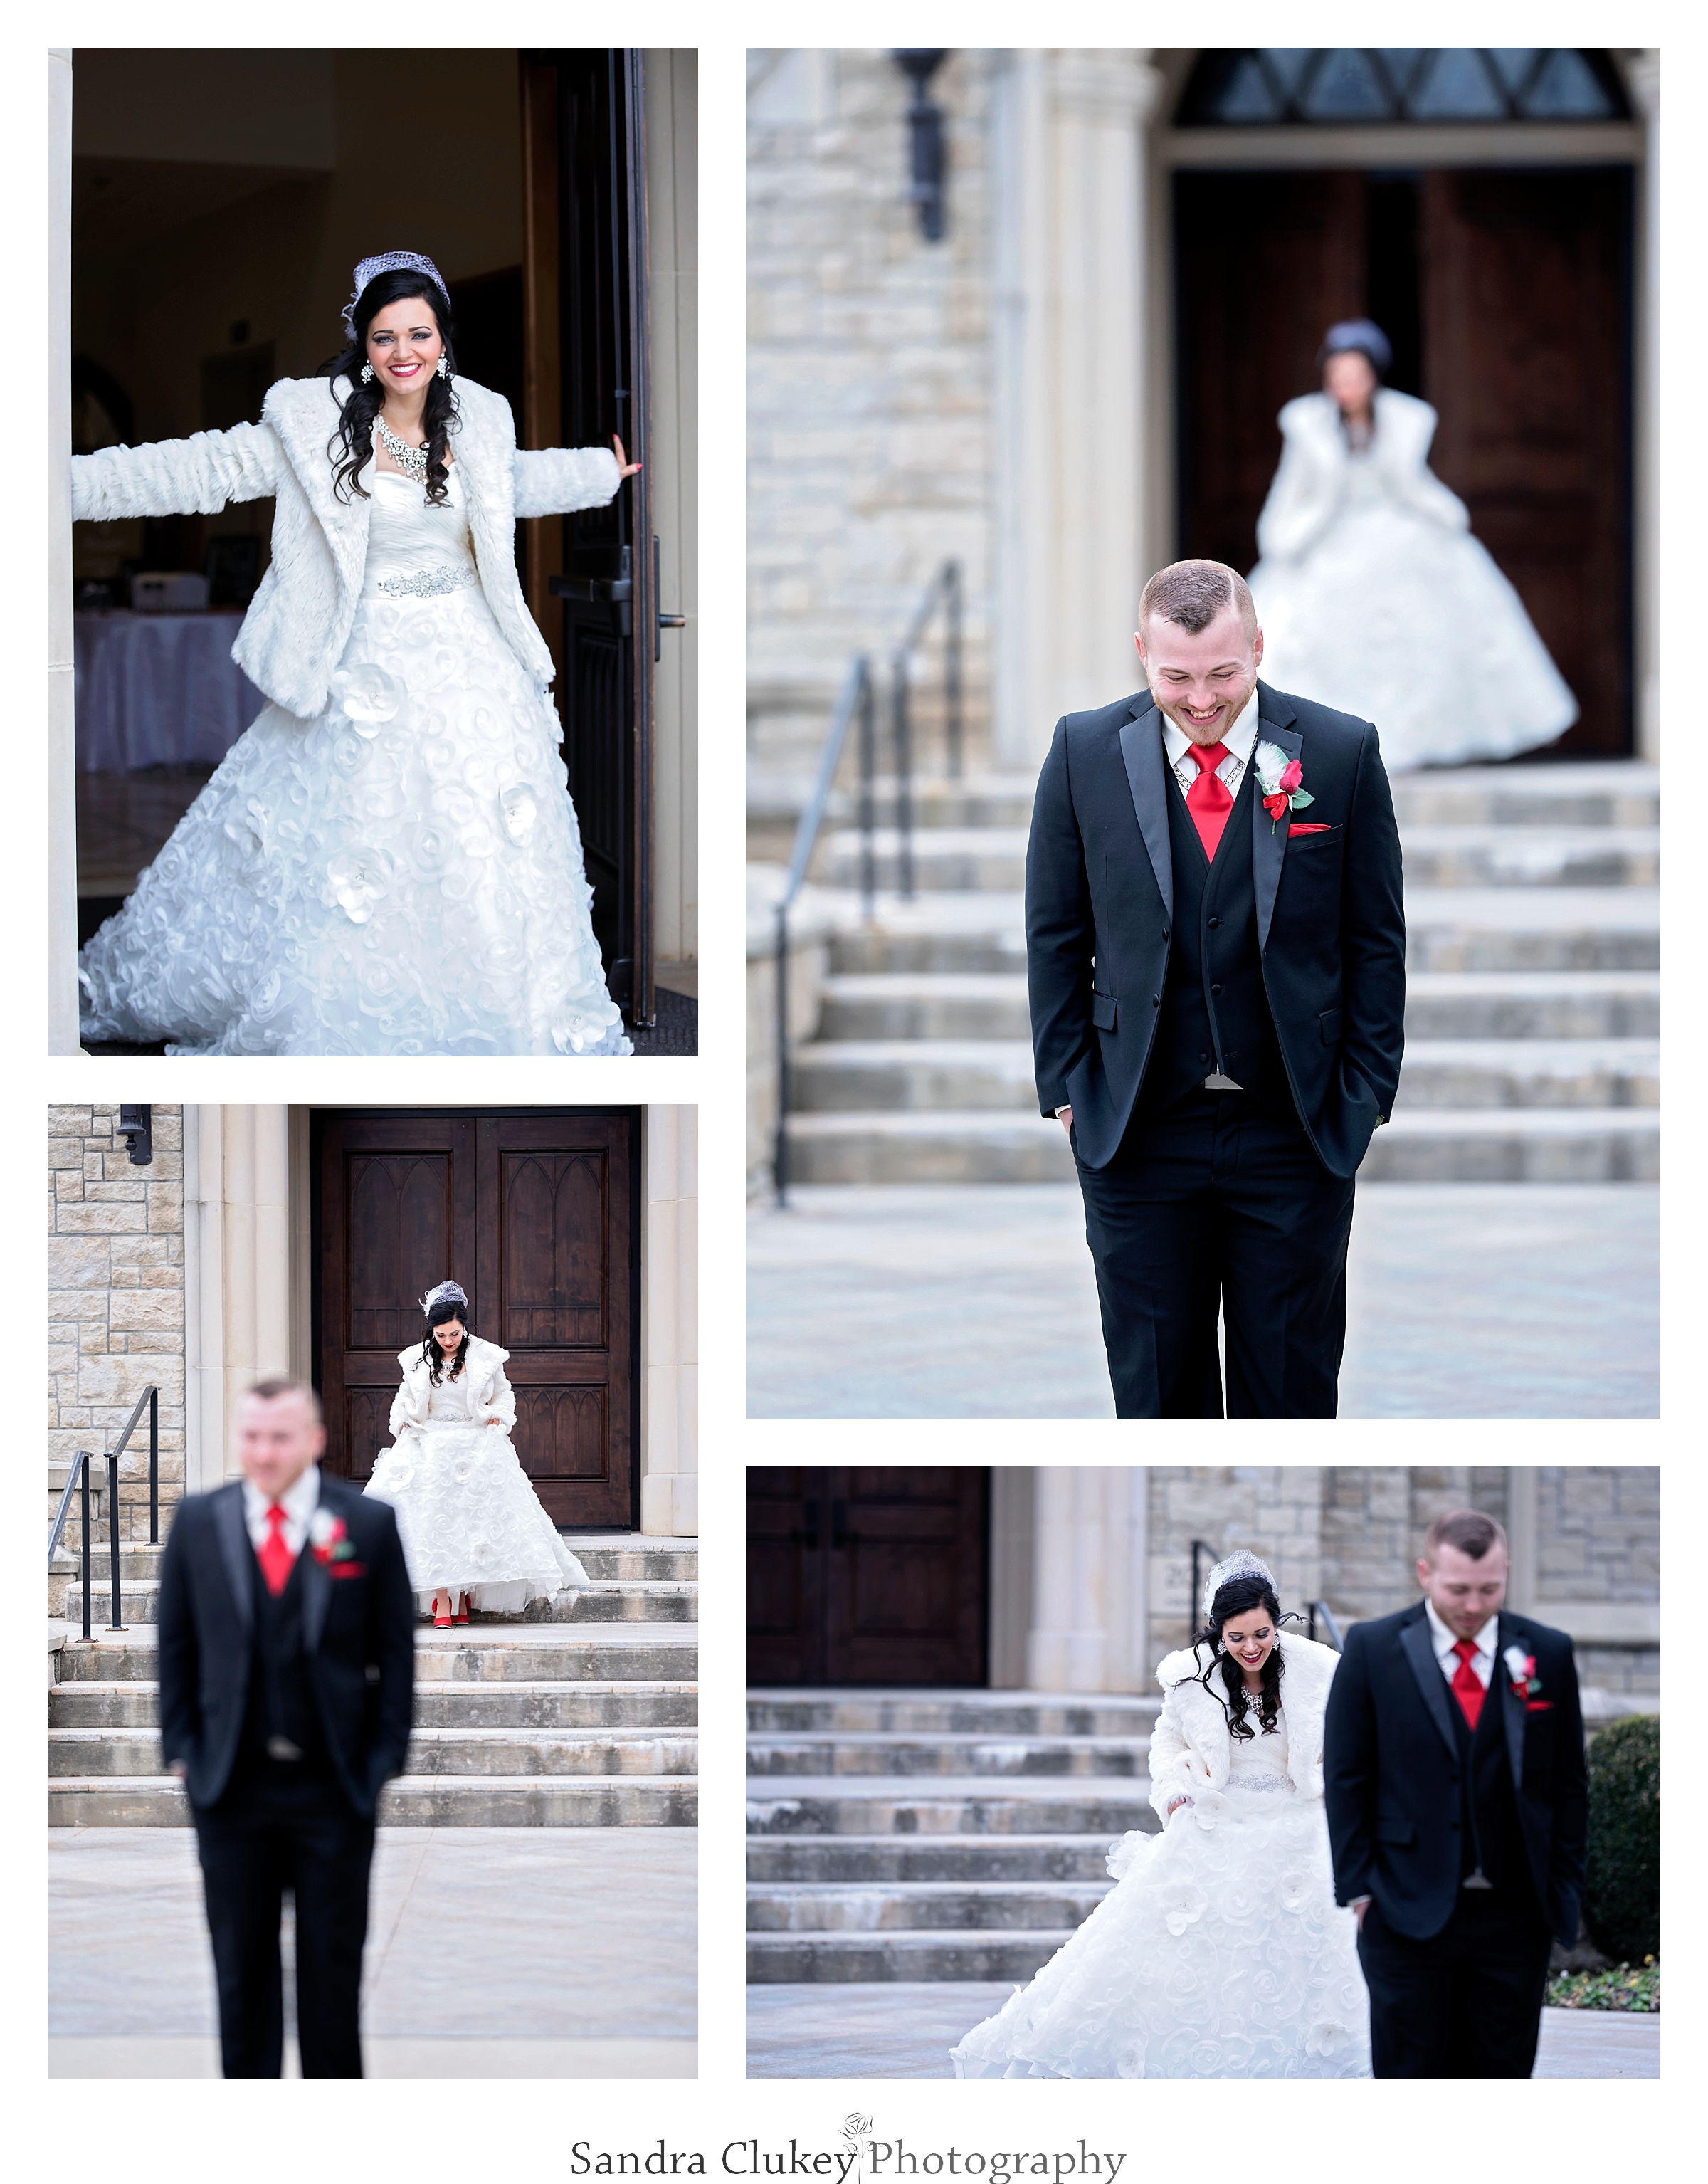 Wedding day first look with bride and groom at Lee University Chapel, Cleveland TN